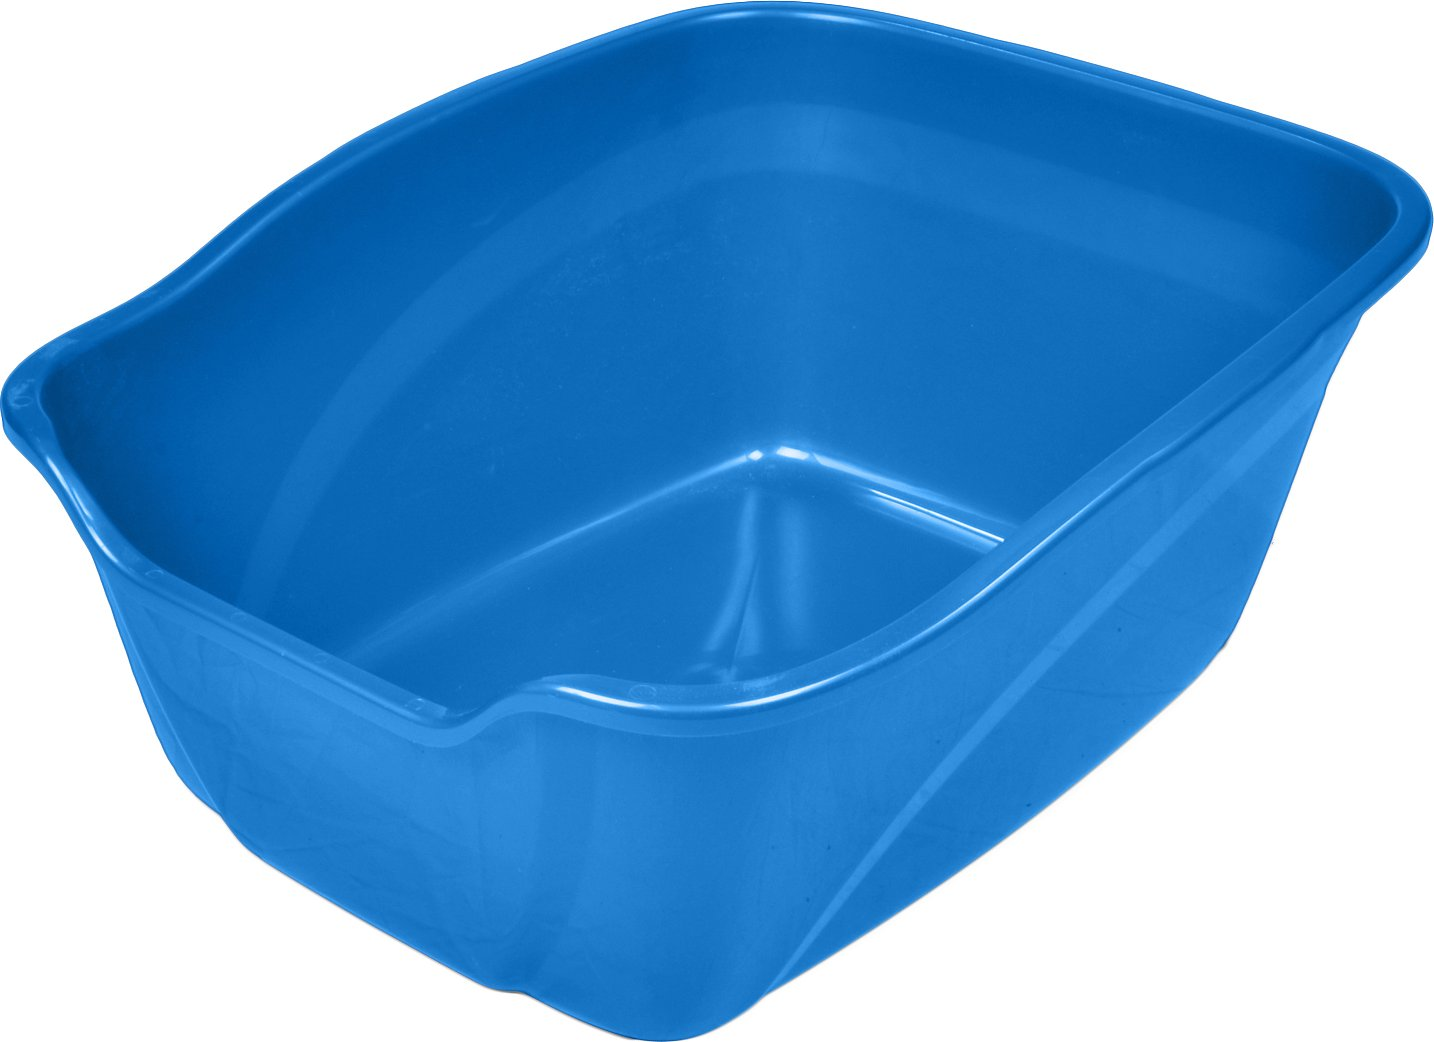 Van Ness High Sides Cat Litter Pan, Blue Image